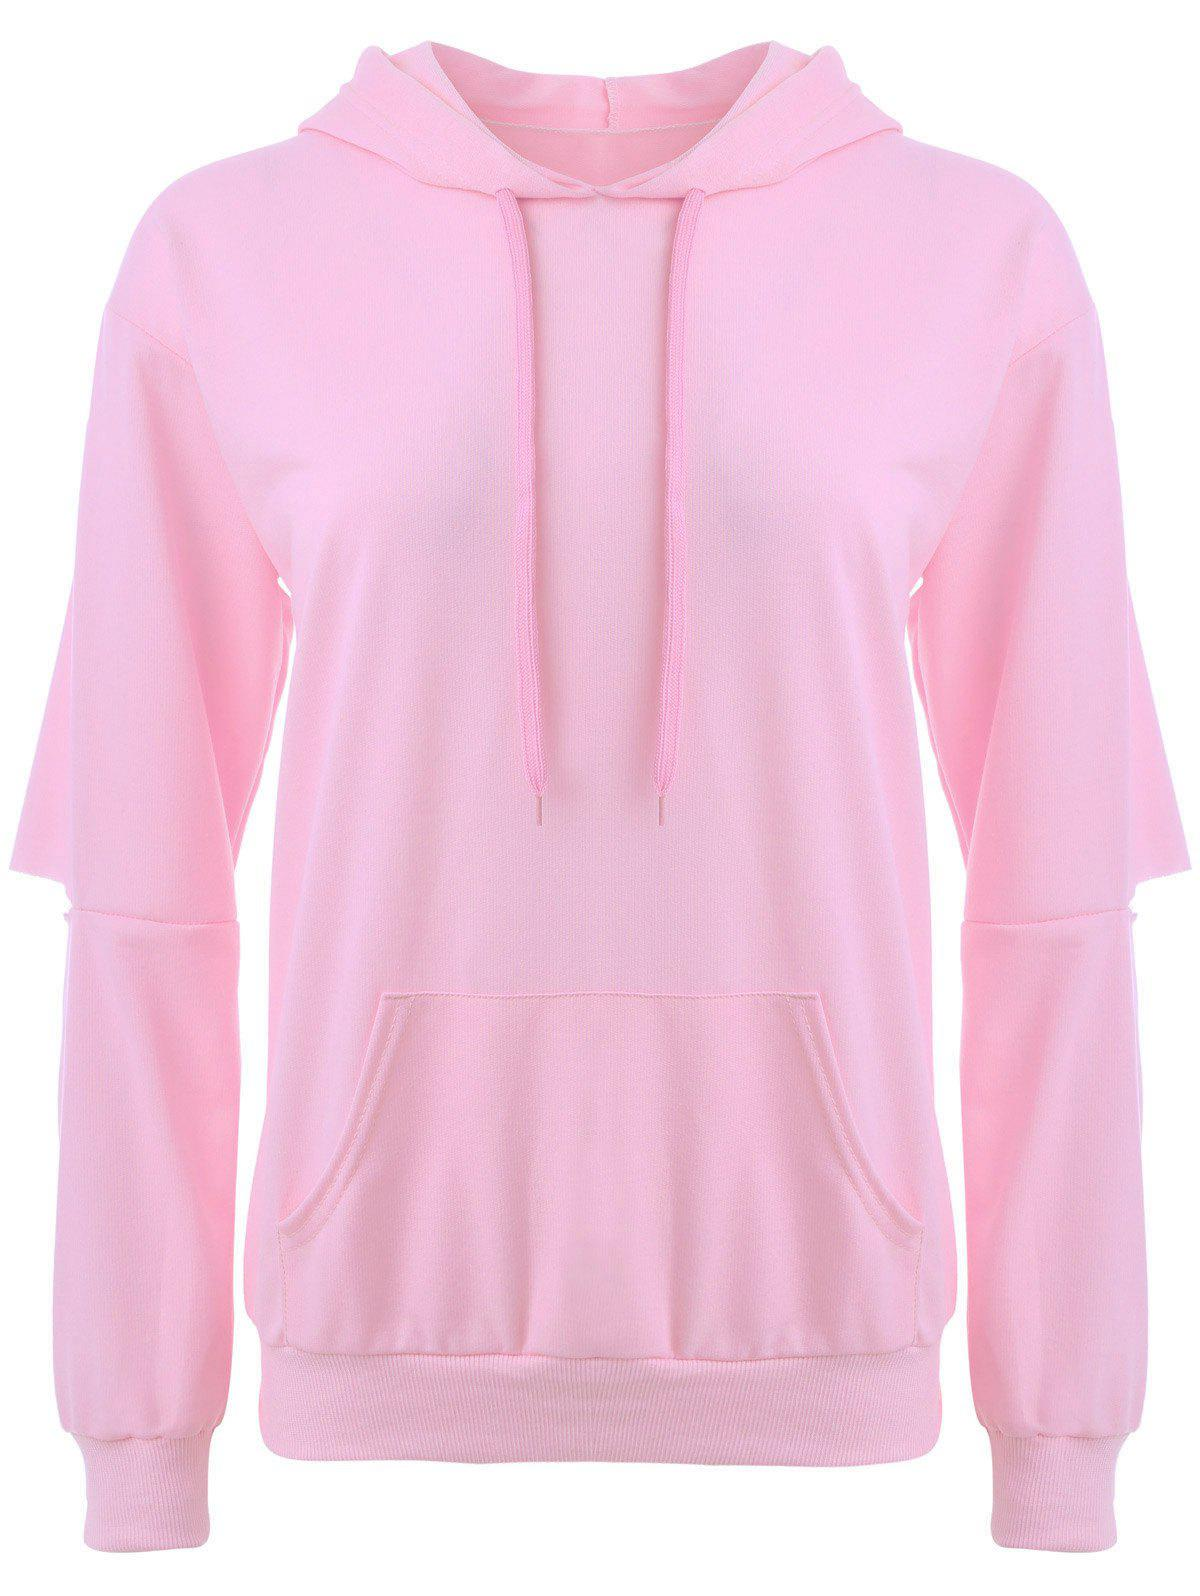 Store Cut Out Elbow Drawstring Hoodie